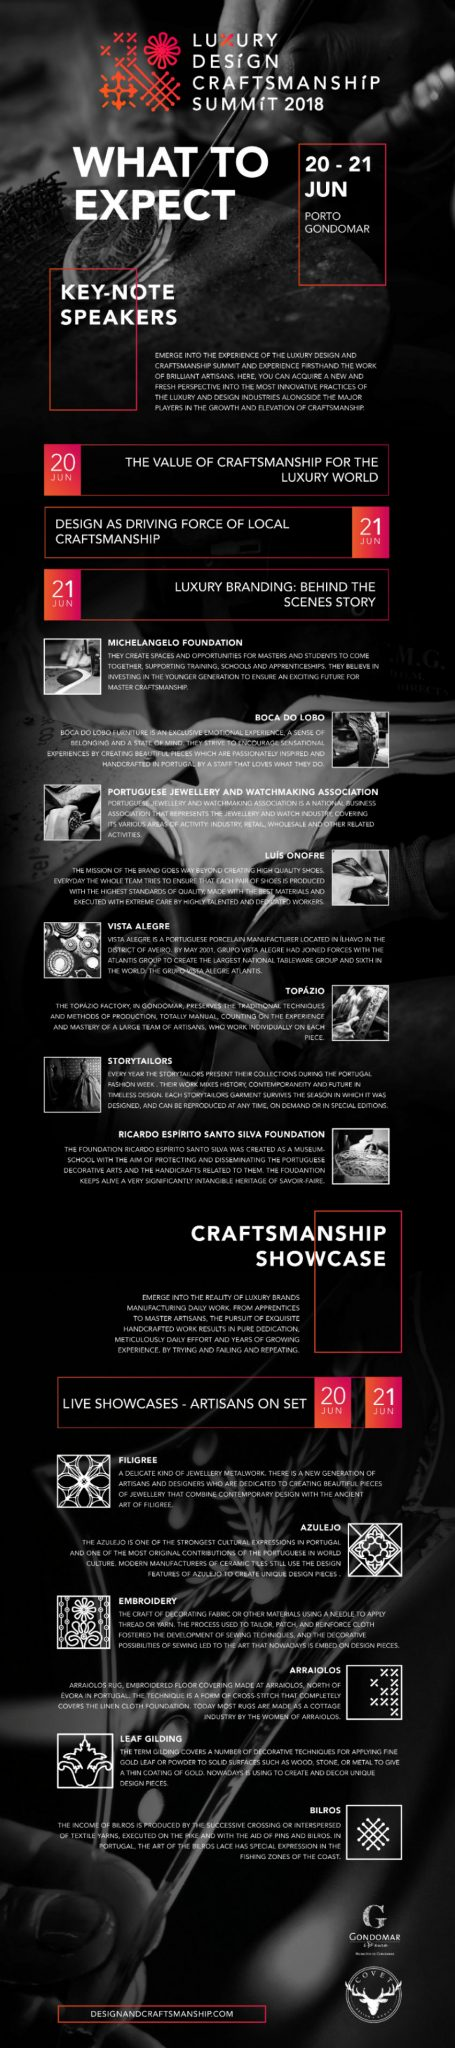 Discover The Speakers of the Luxury Design & Craftsmanship Summit craftsmanship summit Discover The Speakers of the Luxury Design & Craftsmanship Summit summit what to expect 001